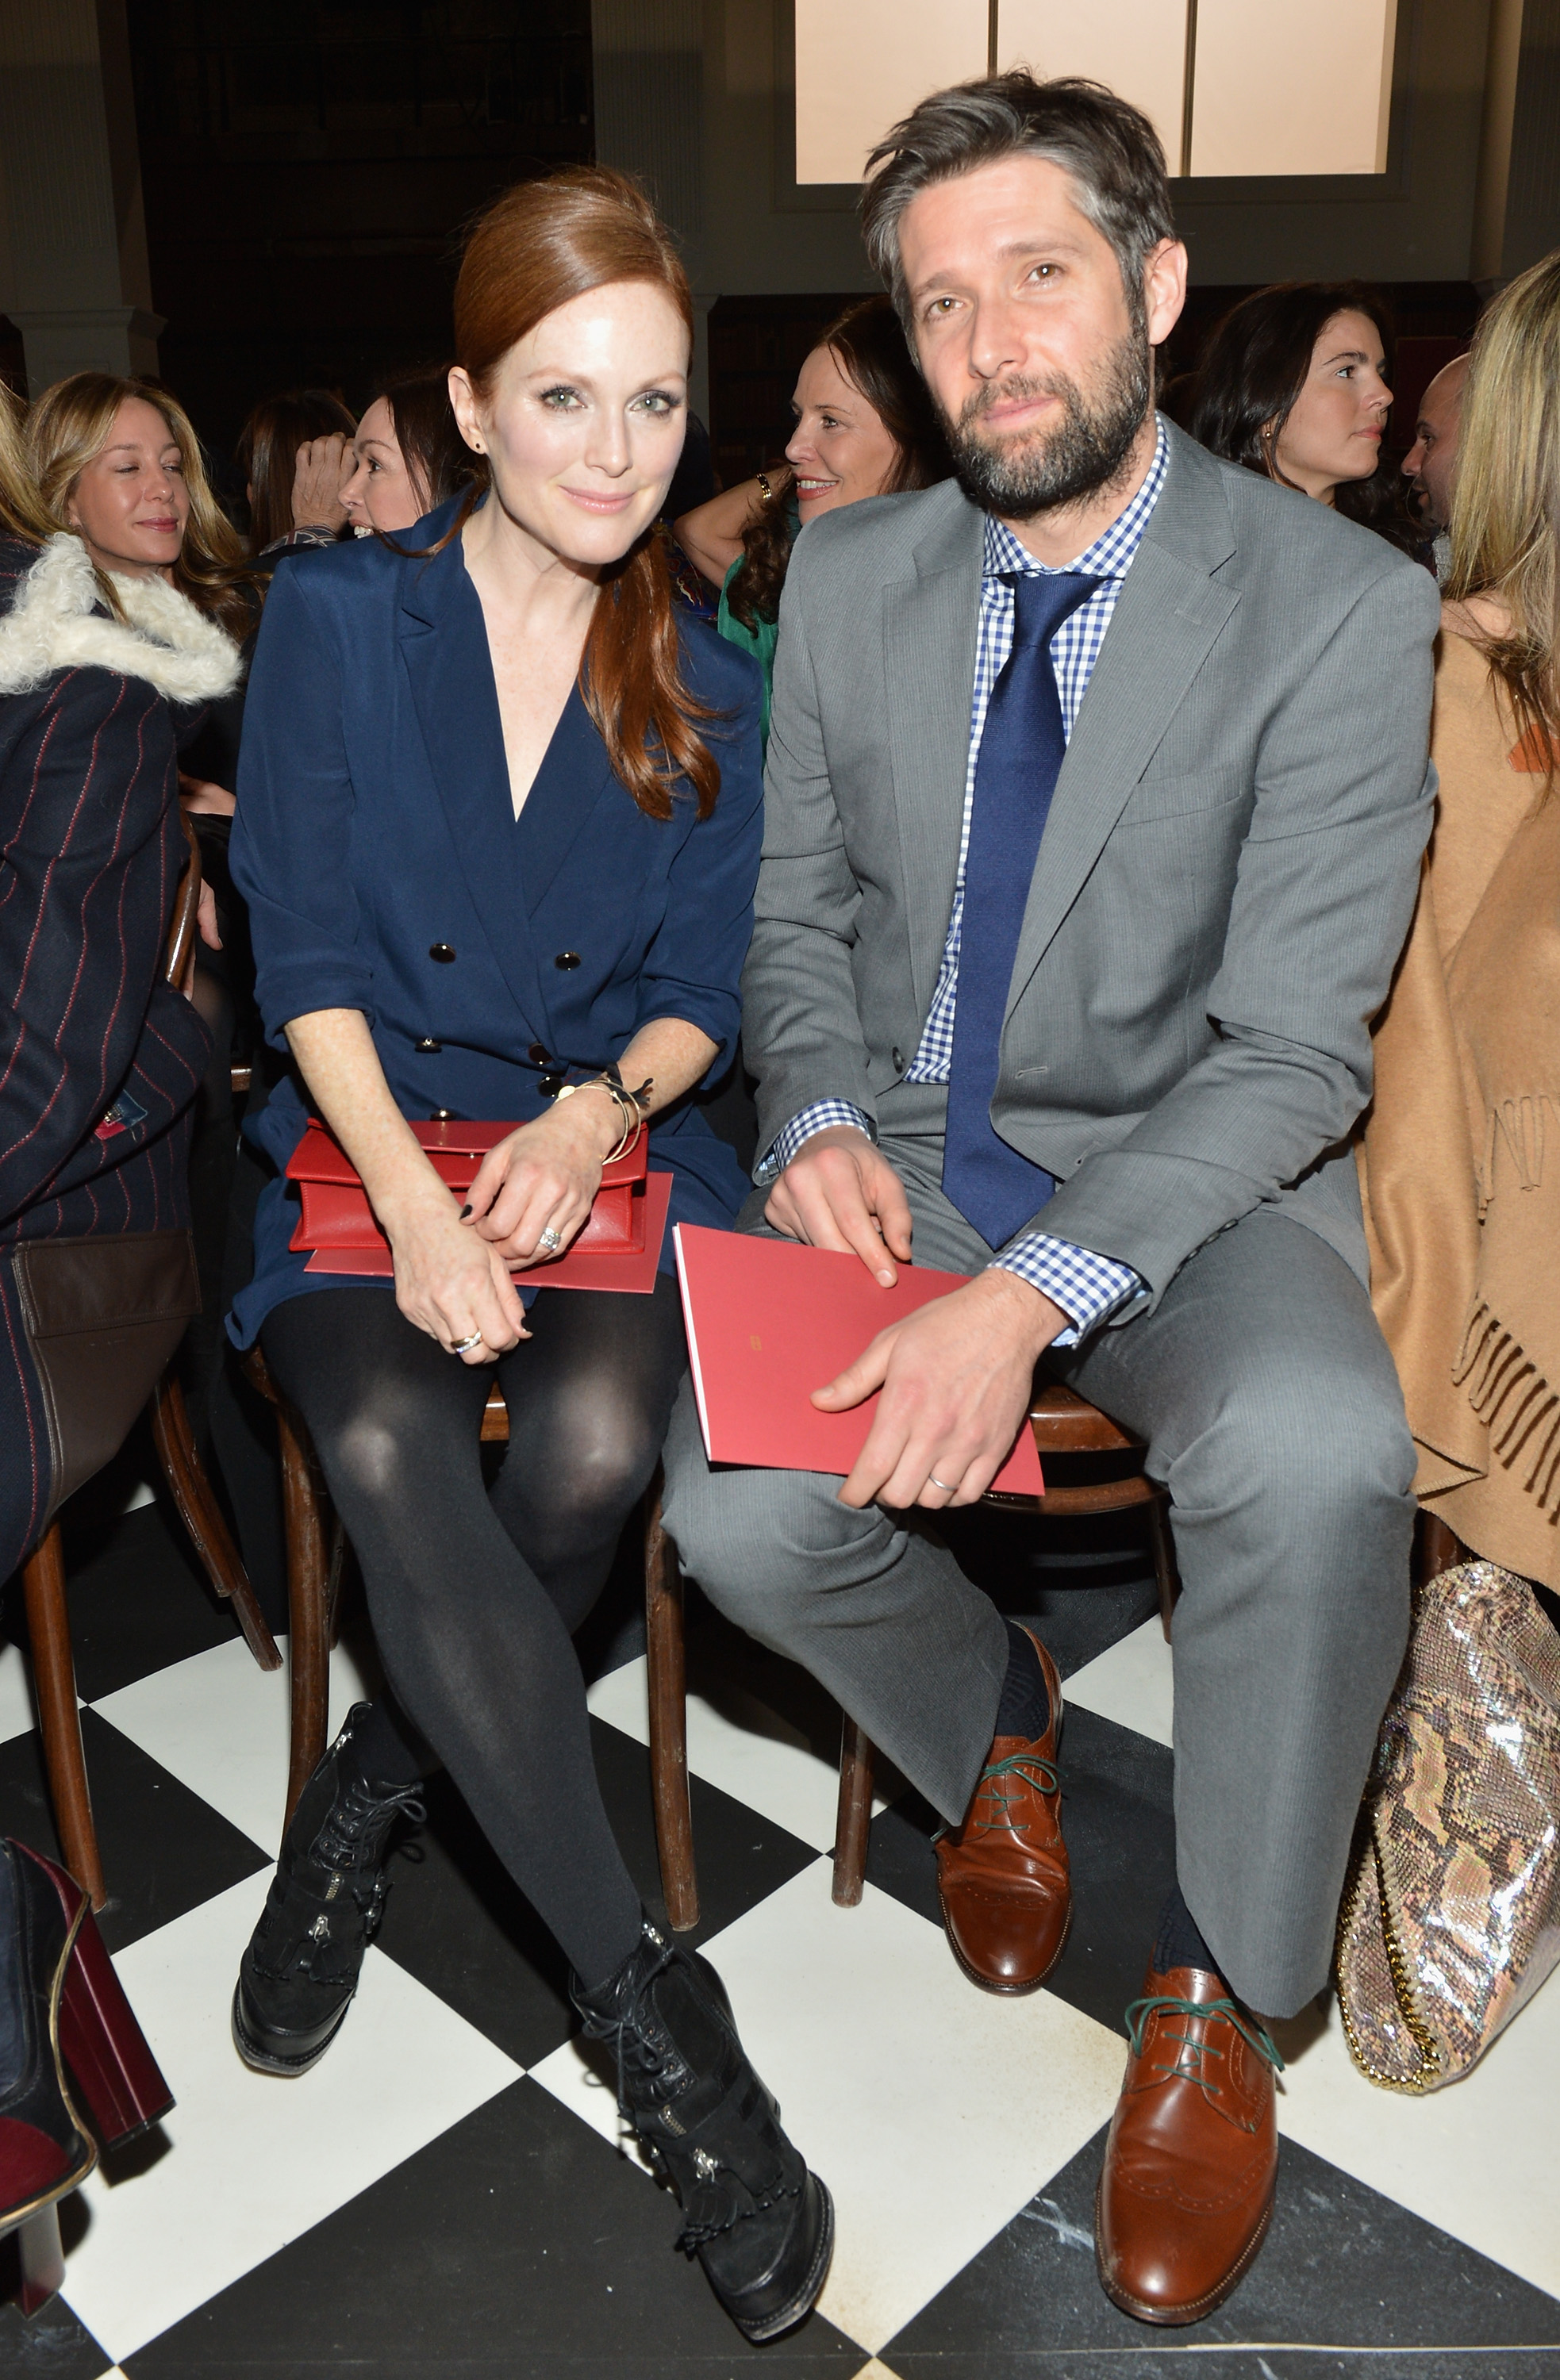 Julianne Moore sat next to Bart Freundlich at Tommy Hilfiger's women's collection fashion show on Saturday.